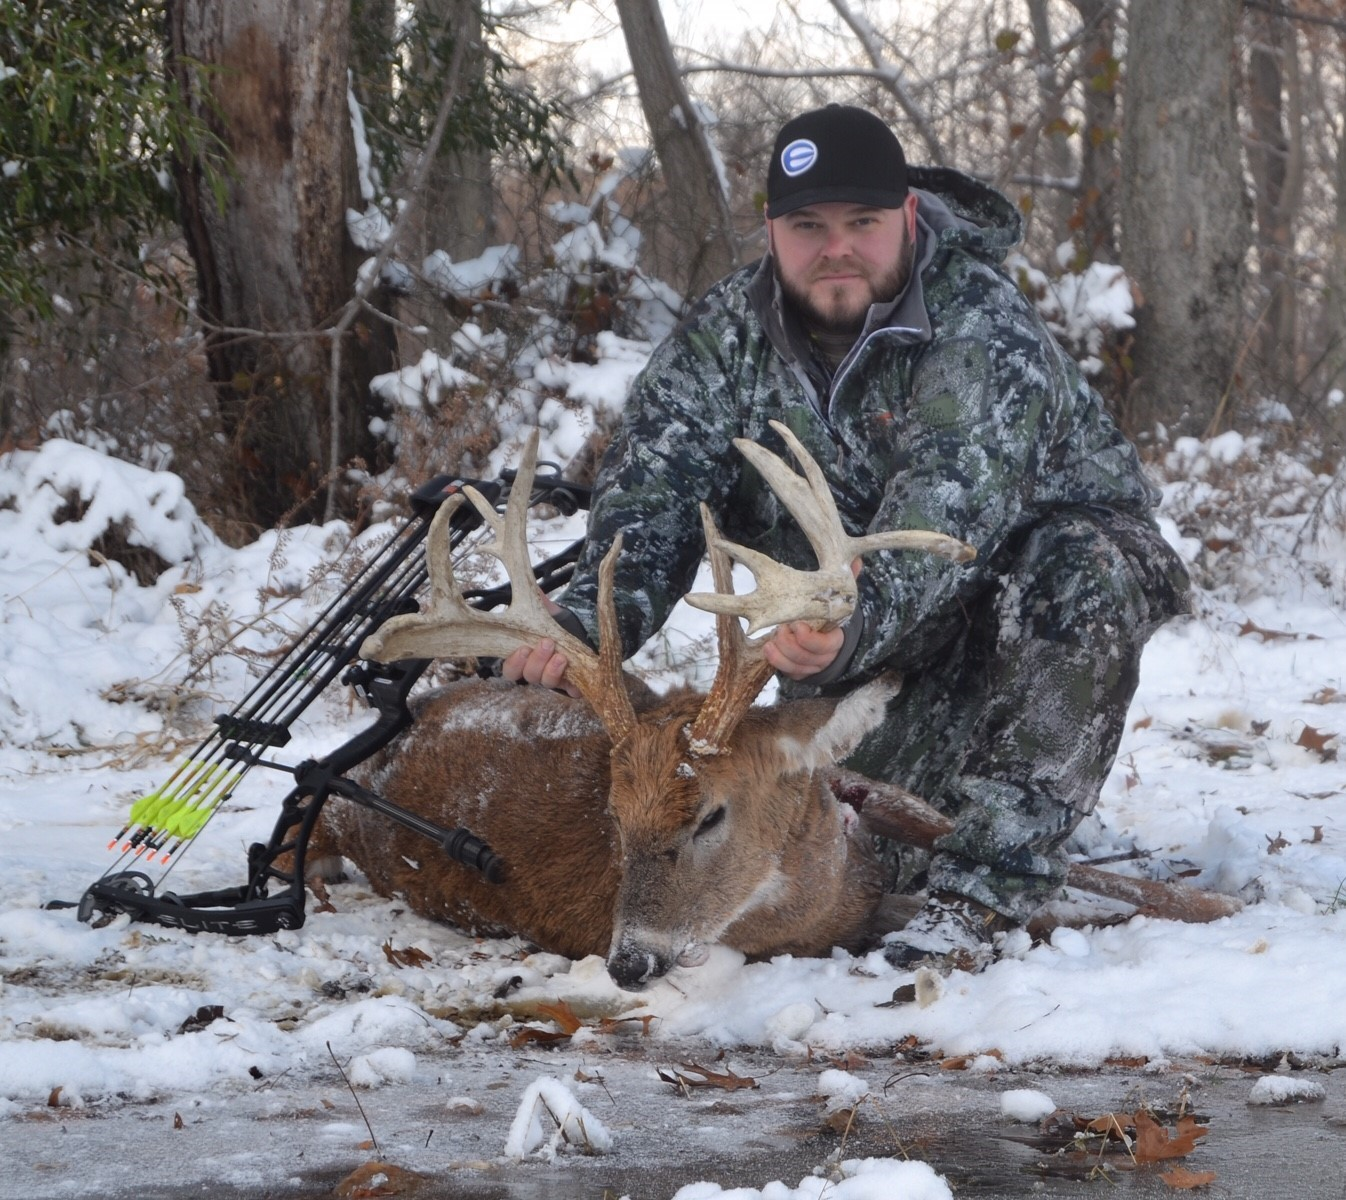 Jim Crissman with whitetail deer